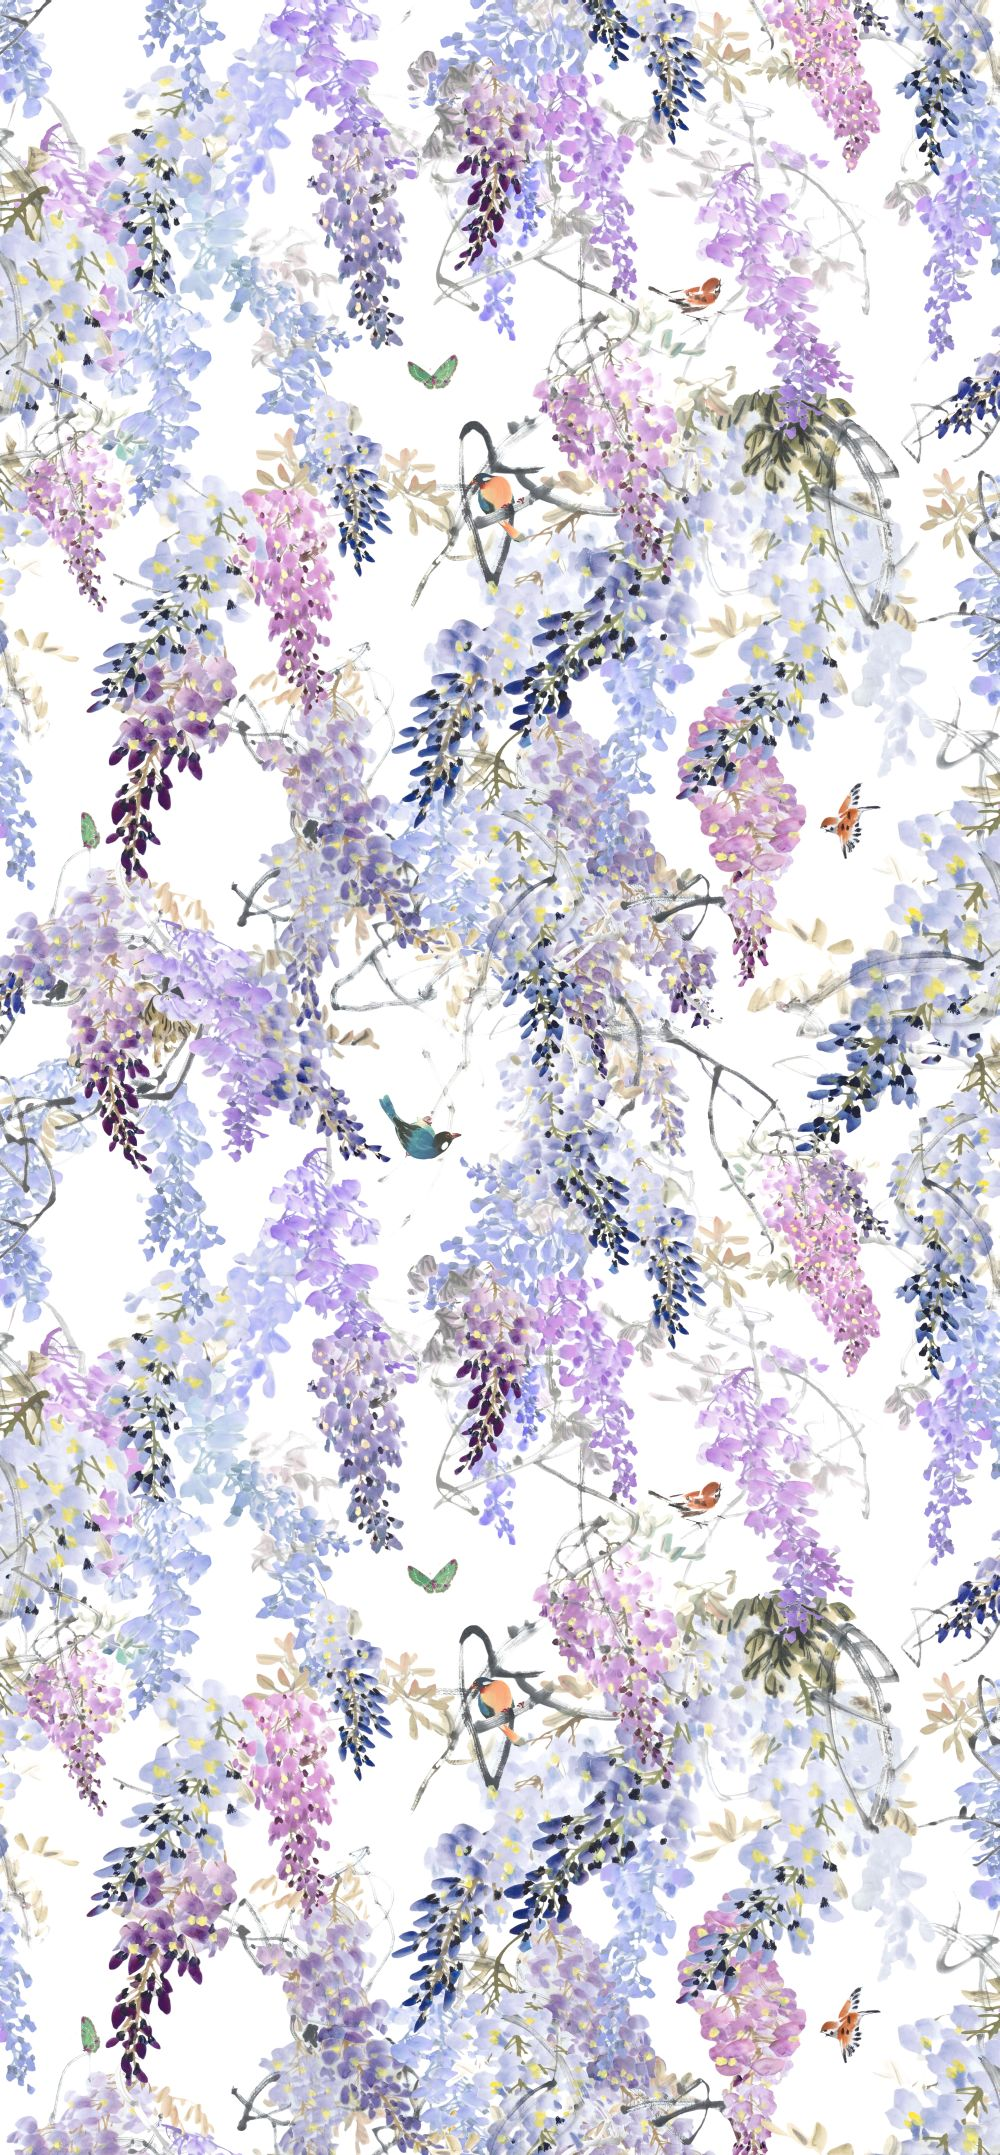 Wisteria Falls Wallpaper Wisteria Falls Panel A By Sanderson Lilac Wallpaper Direct